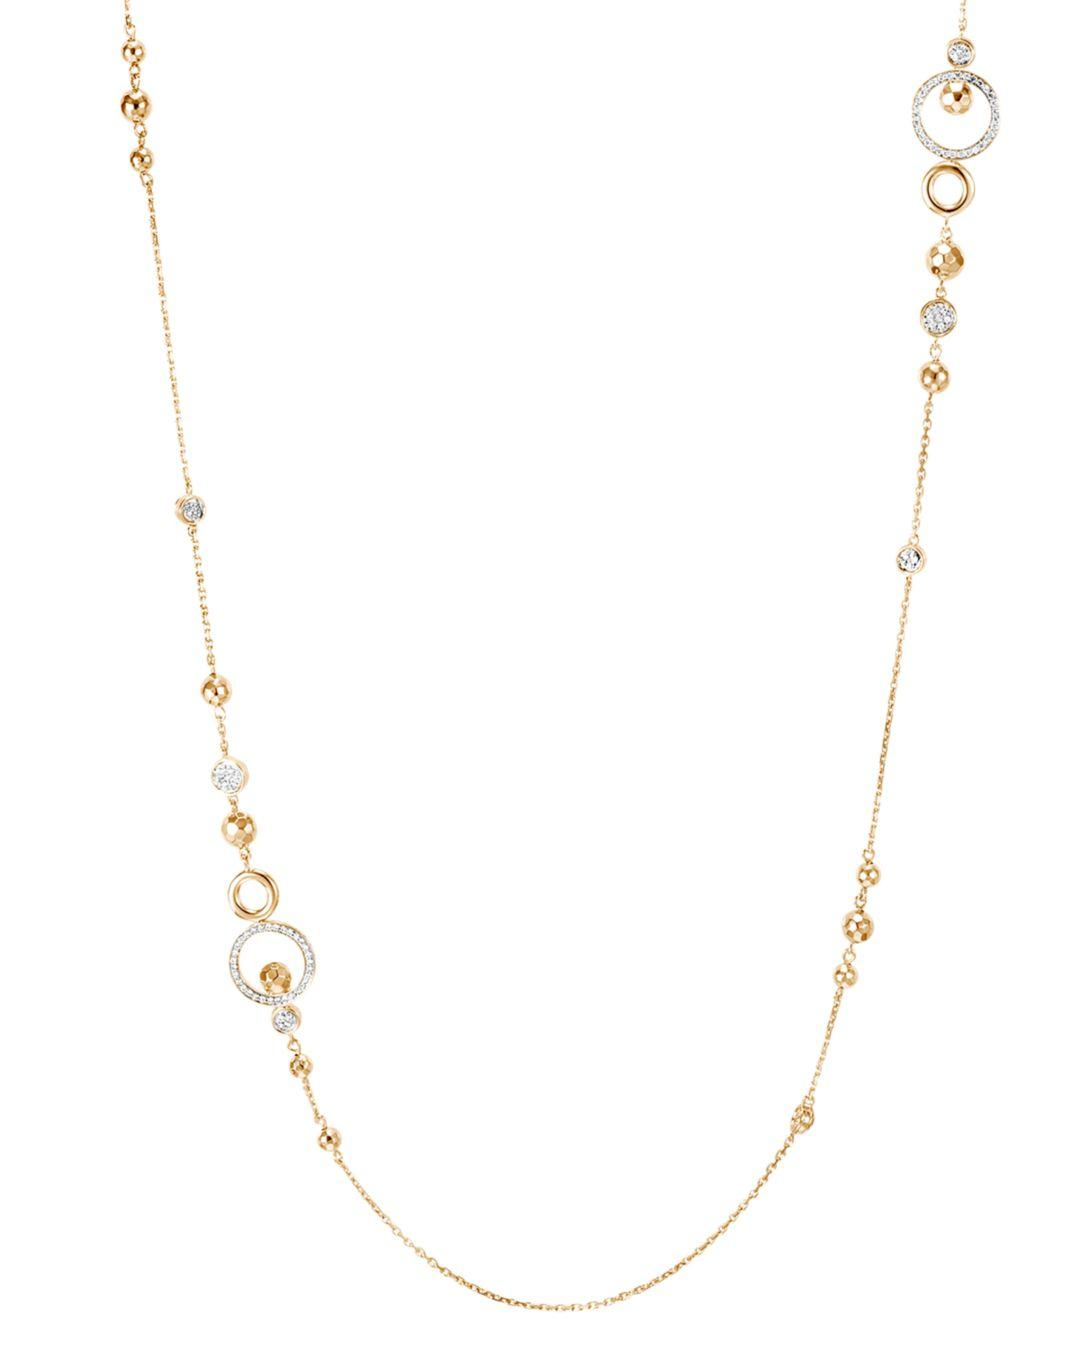 John Hardy 18k Yellow Gold Dot Pavé Diamond Sautoir Chain Pertaining To Best And Newest Yellow Gold Diamond Sautoir Necklaces (View 6 of 25)